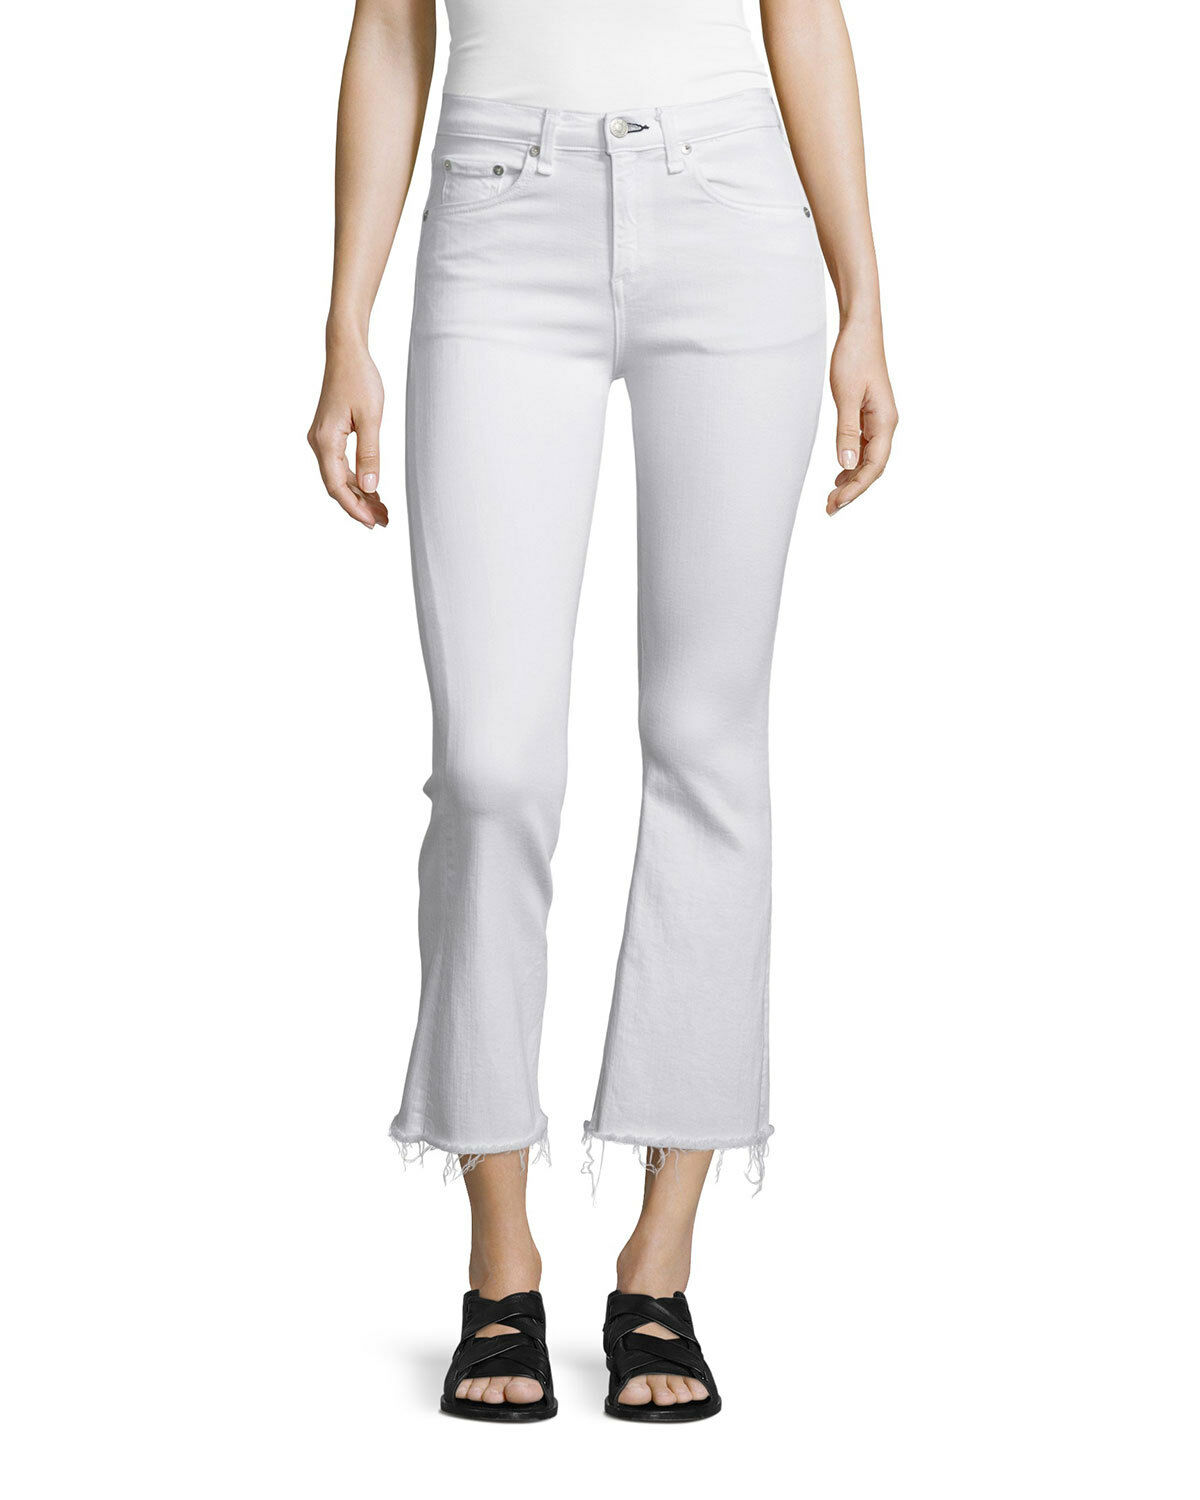 Rag & bone Women's White Crop Straight Legl Jeans